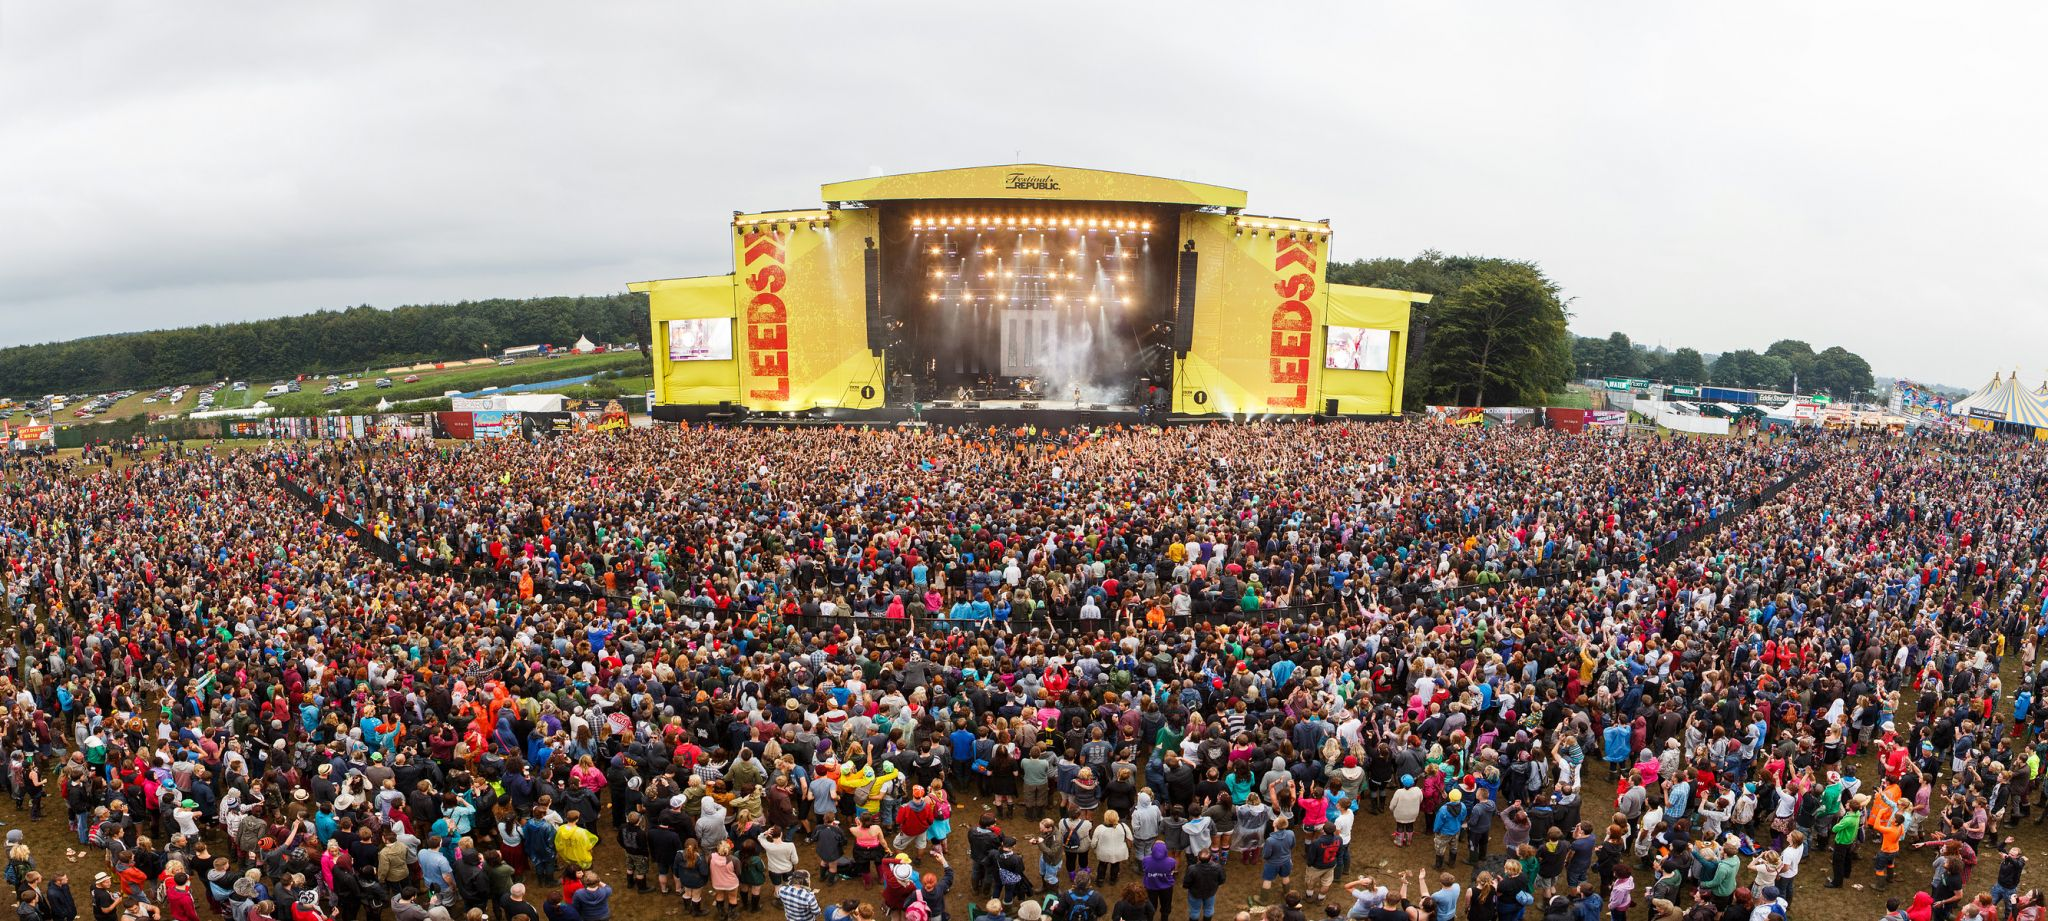 Leeds Festival Crowd 2017